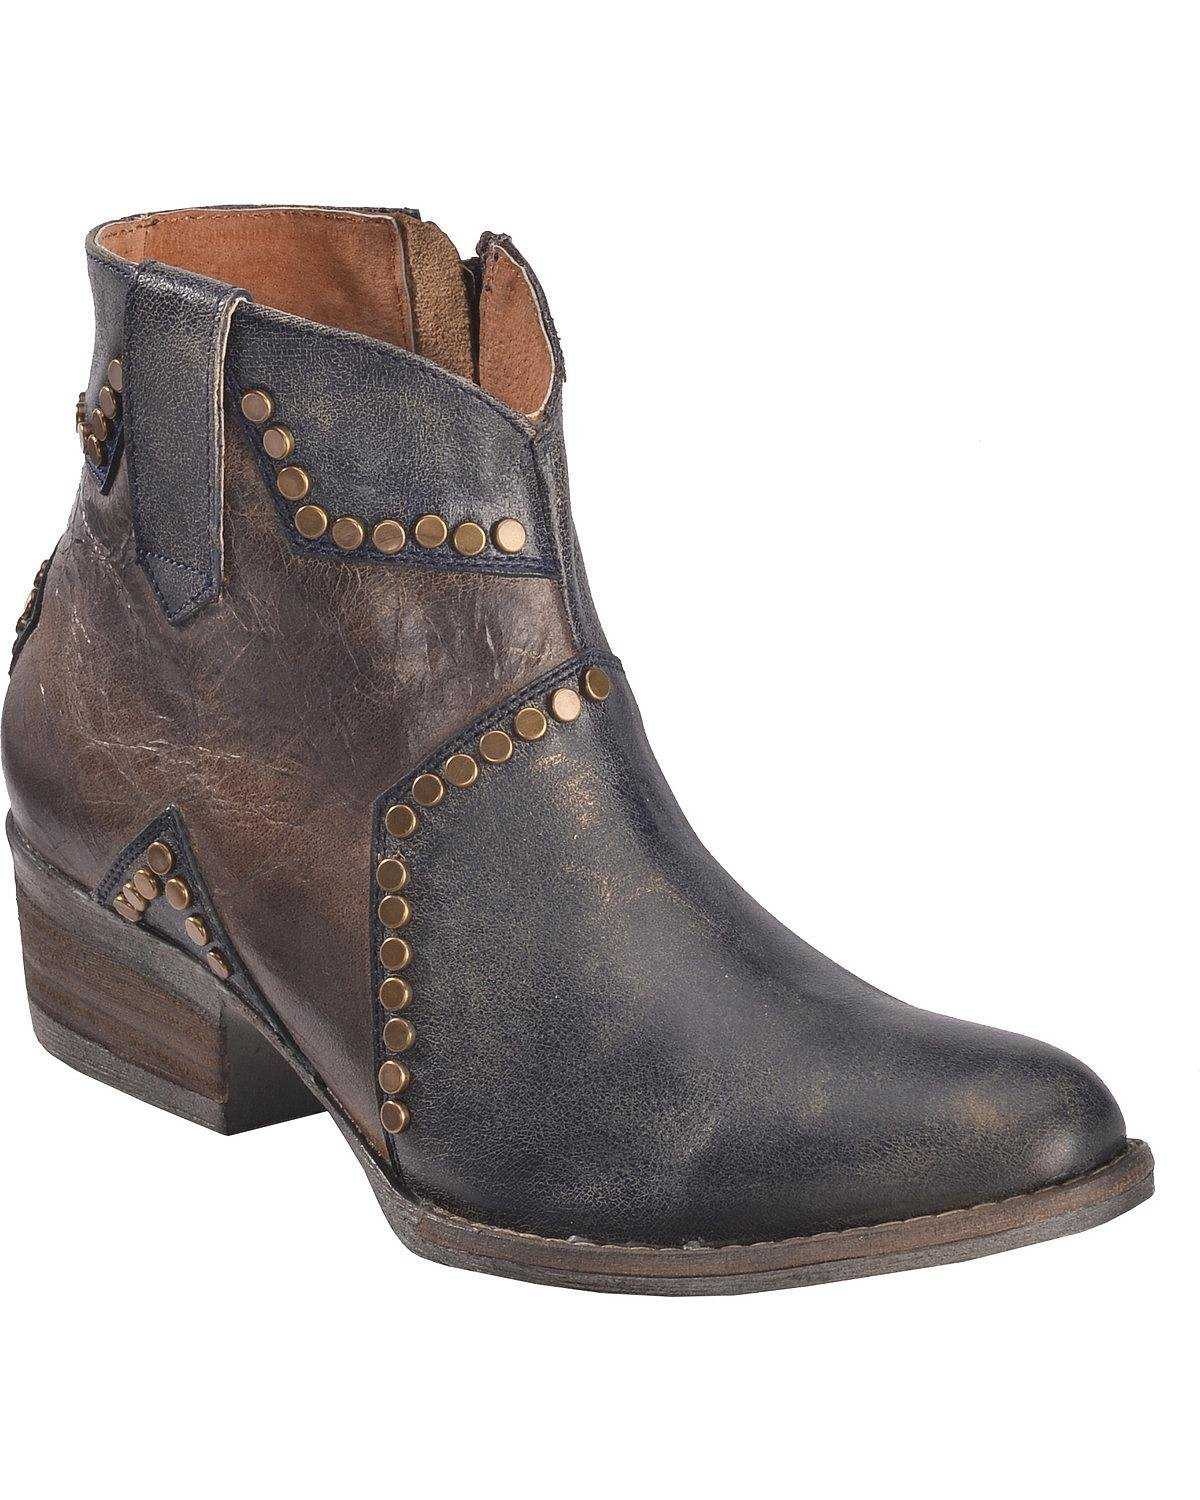 Circle G Women's Studded Star Inlay Ankle Boot Round Toe - Q5025 B078NTY197 6 B(M) US|Blue